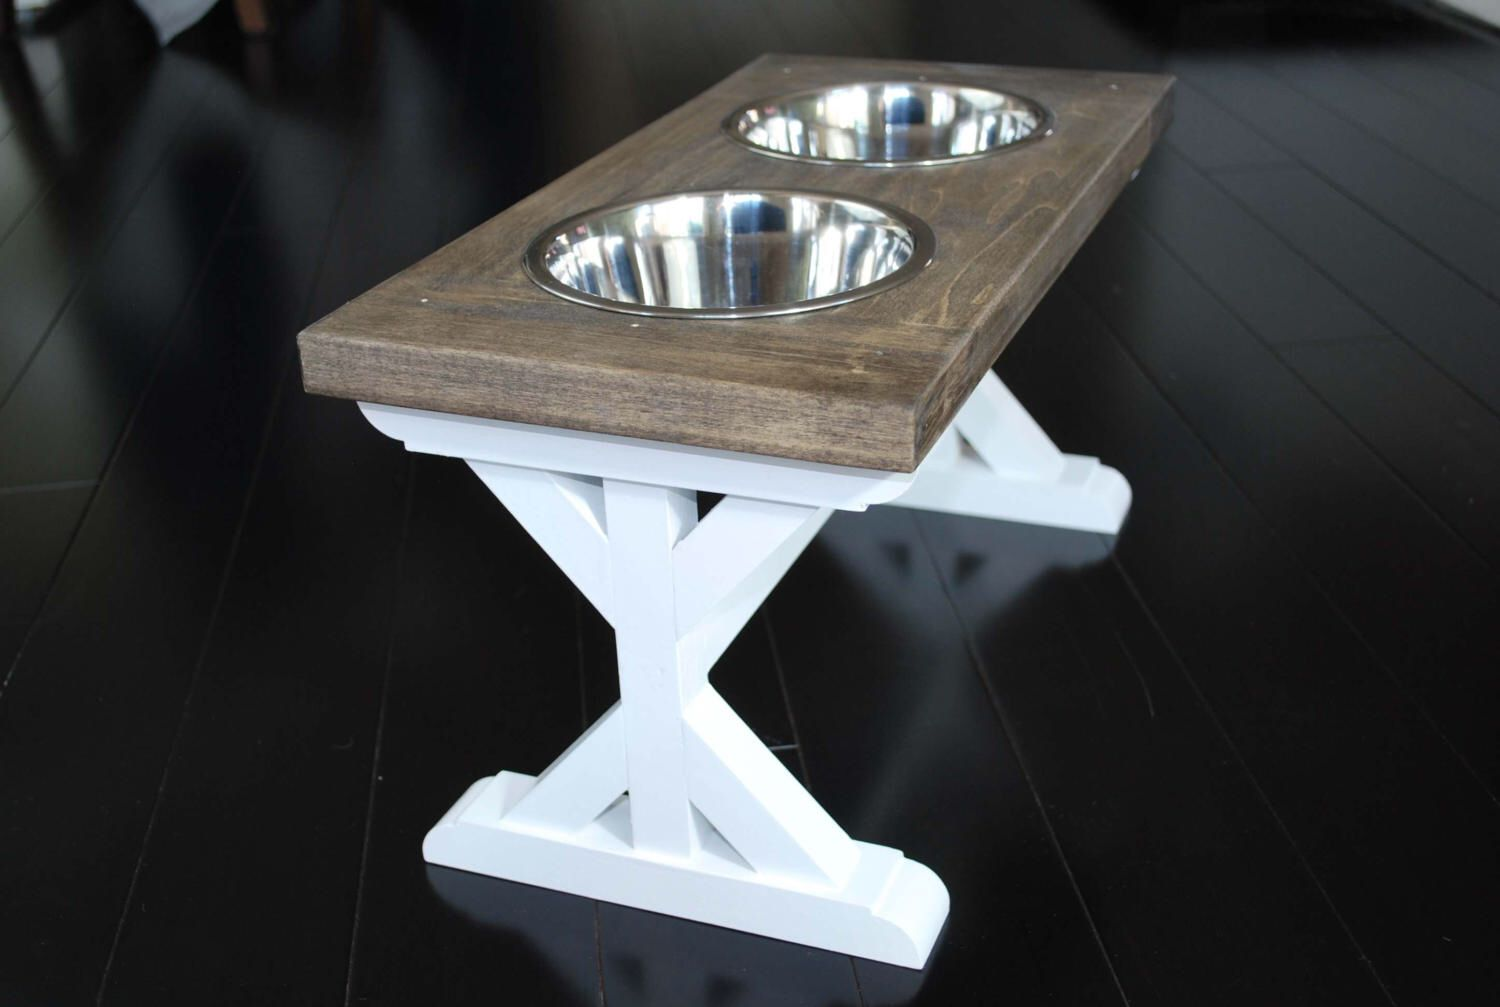 Medium Elevated Dog Bowl Stand Farmhouse Table Trestle Pattern